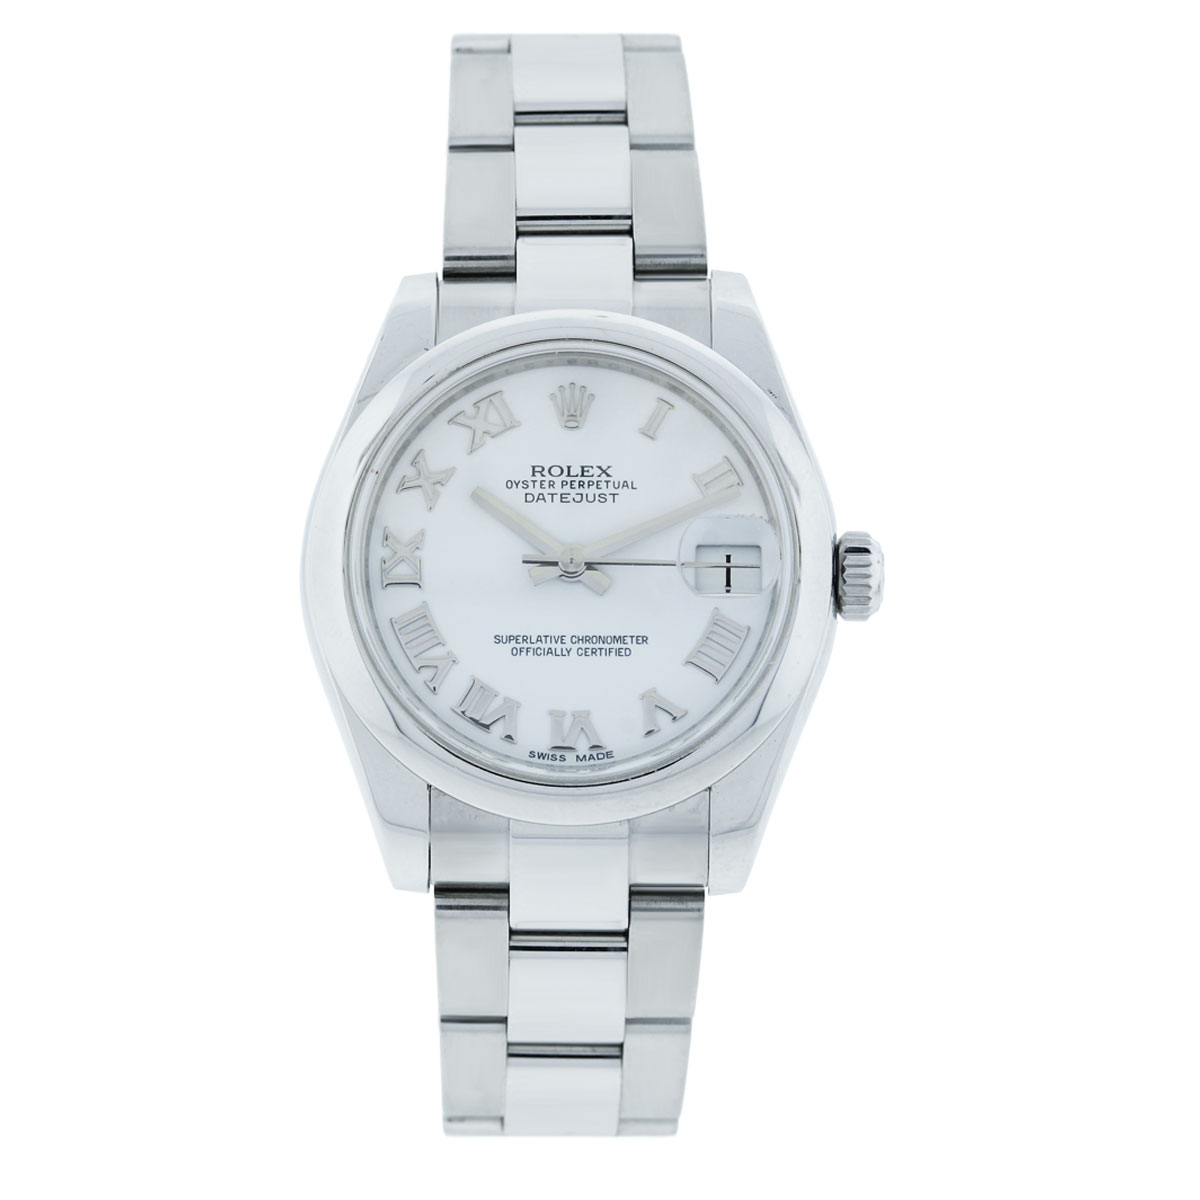 Rolex Datejust 178240 White Dial Midsize Watch